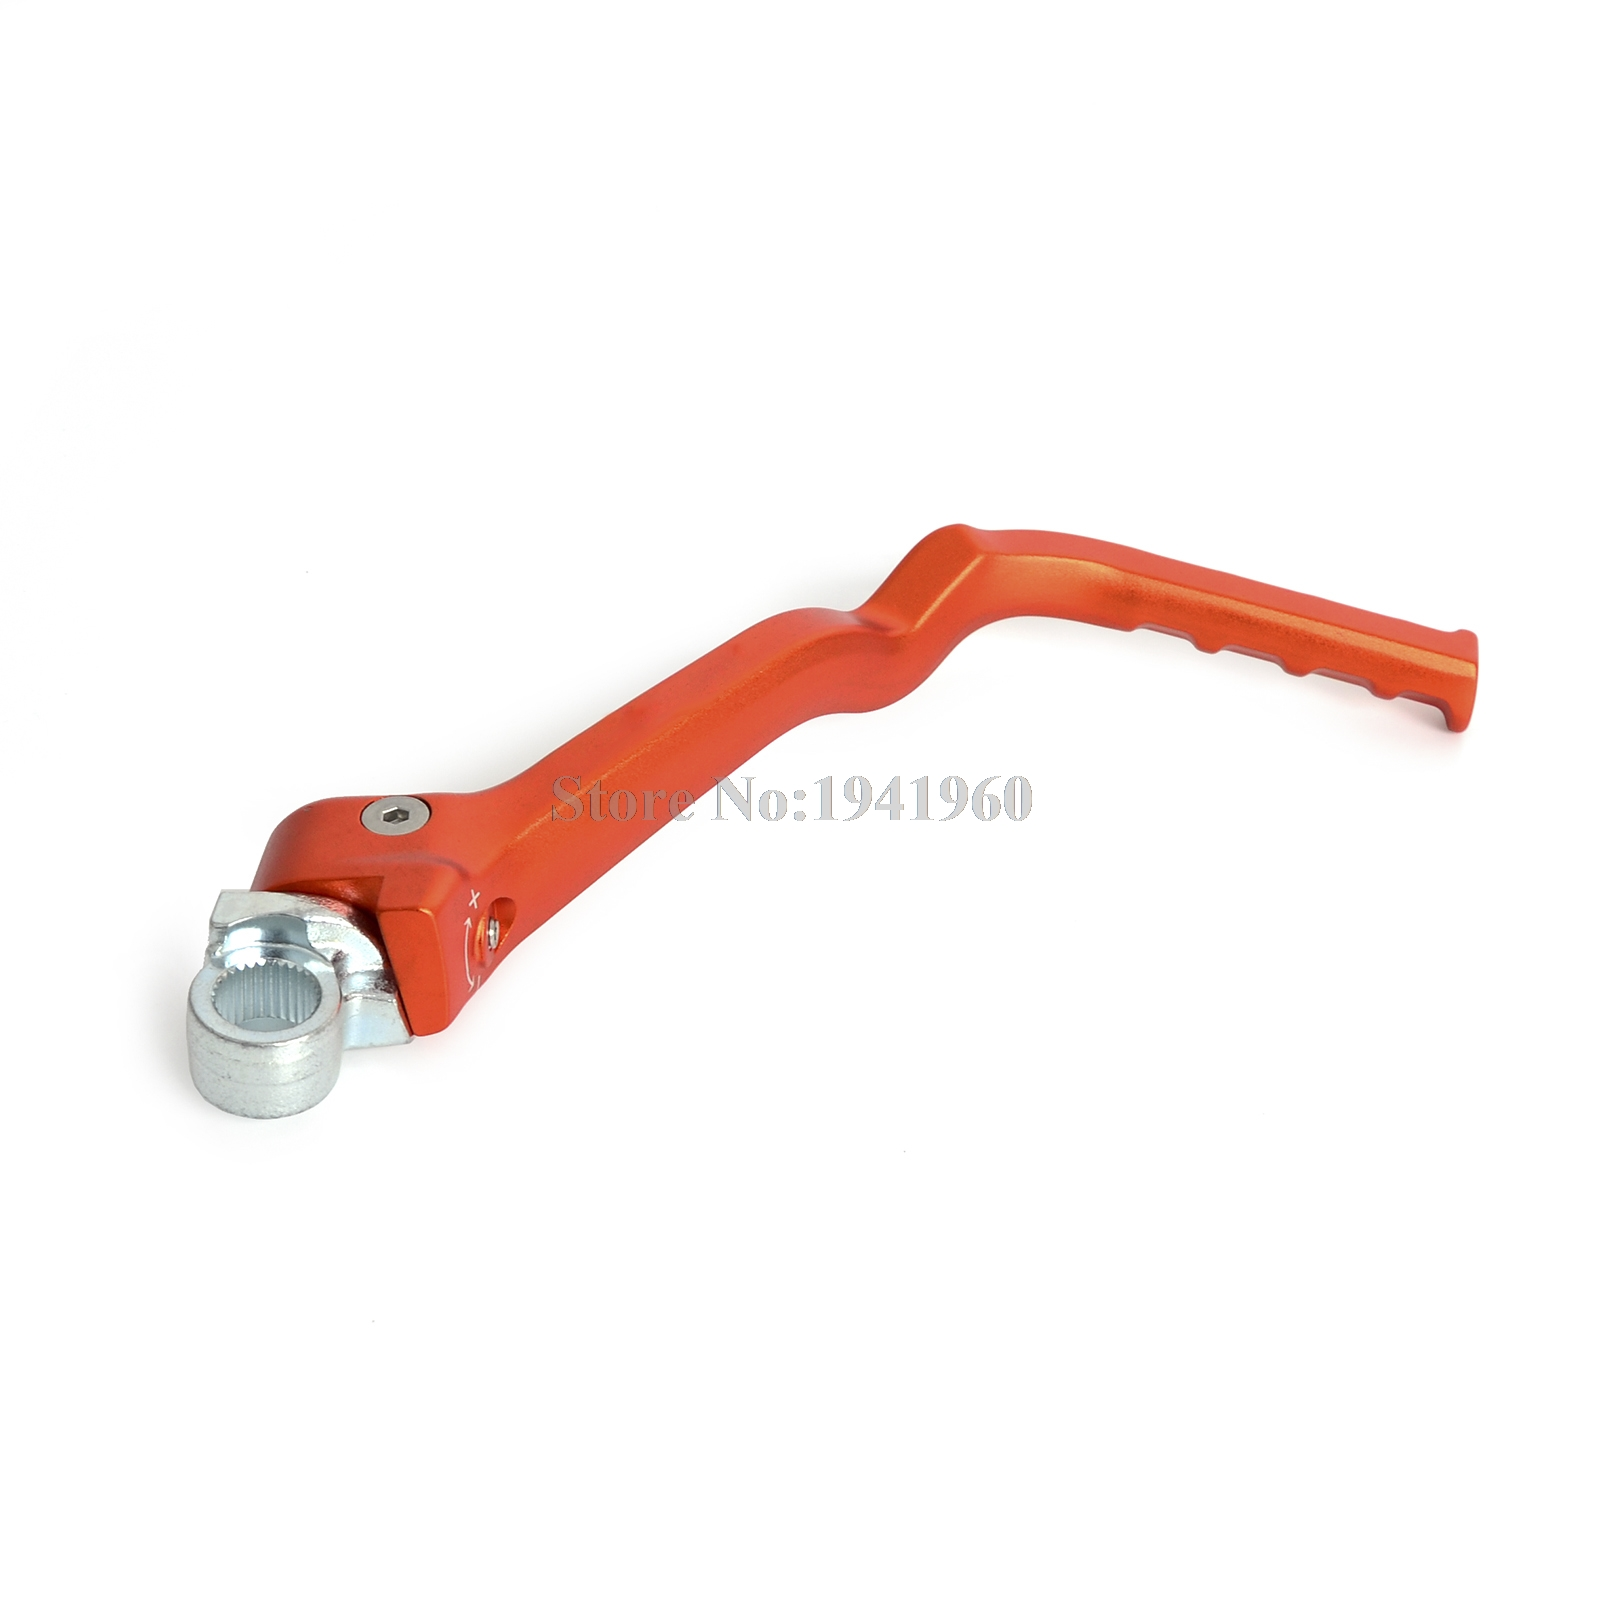 Forged Kick Start Starter Lever Pedal Arm For <font><b>KTM</b></font> SX XCF XC EXC XCW XCFW 250 300 <font><b>350</b></font> 450 500 2011 2012 2013 <font><b>2014</b></font> 2015 2016 image